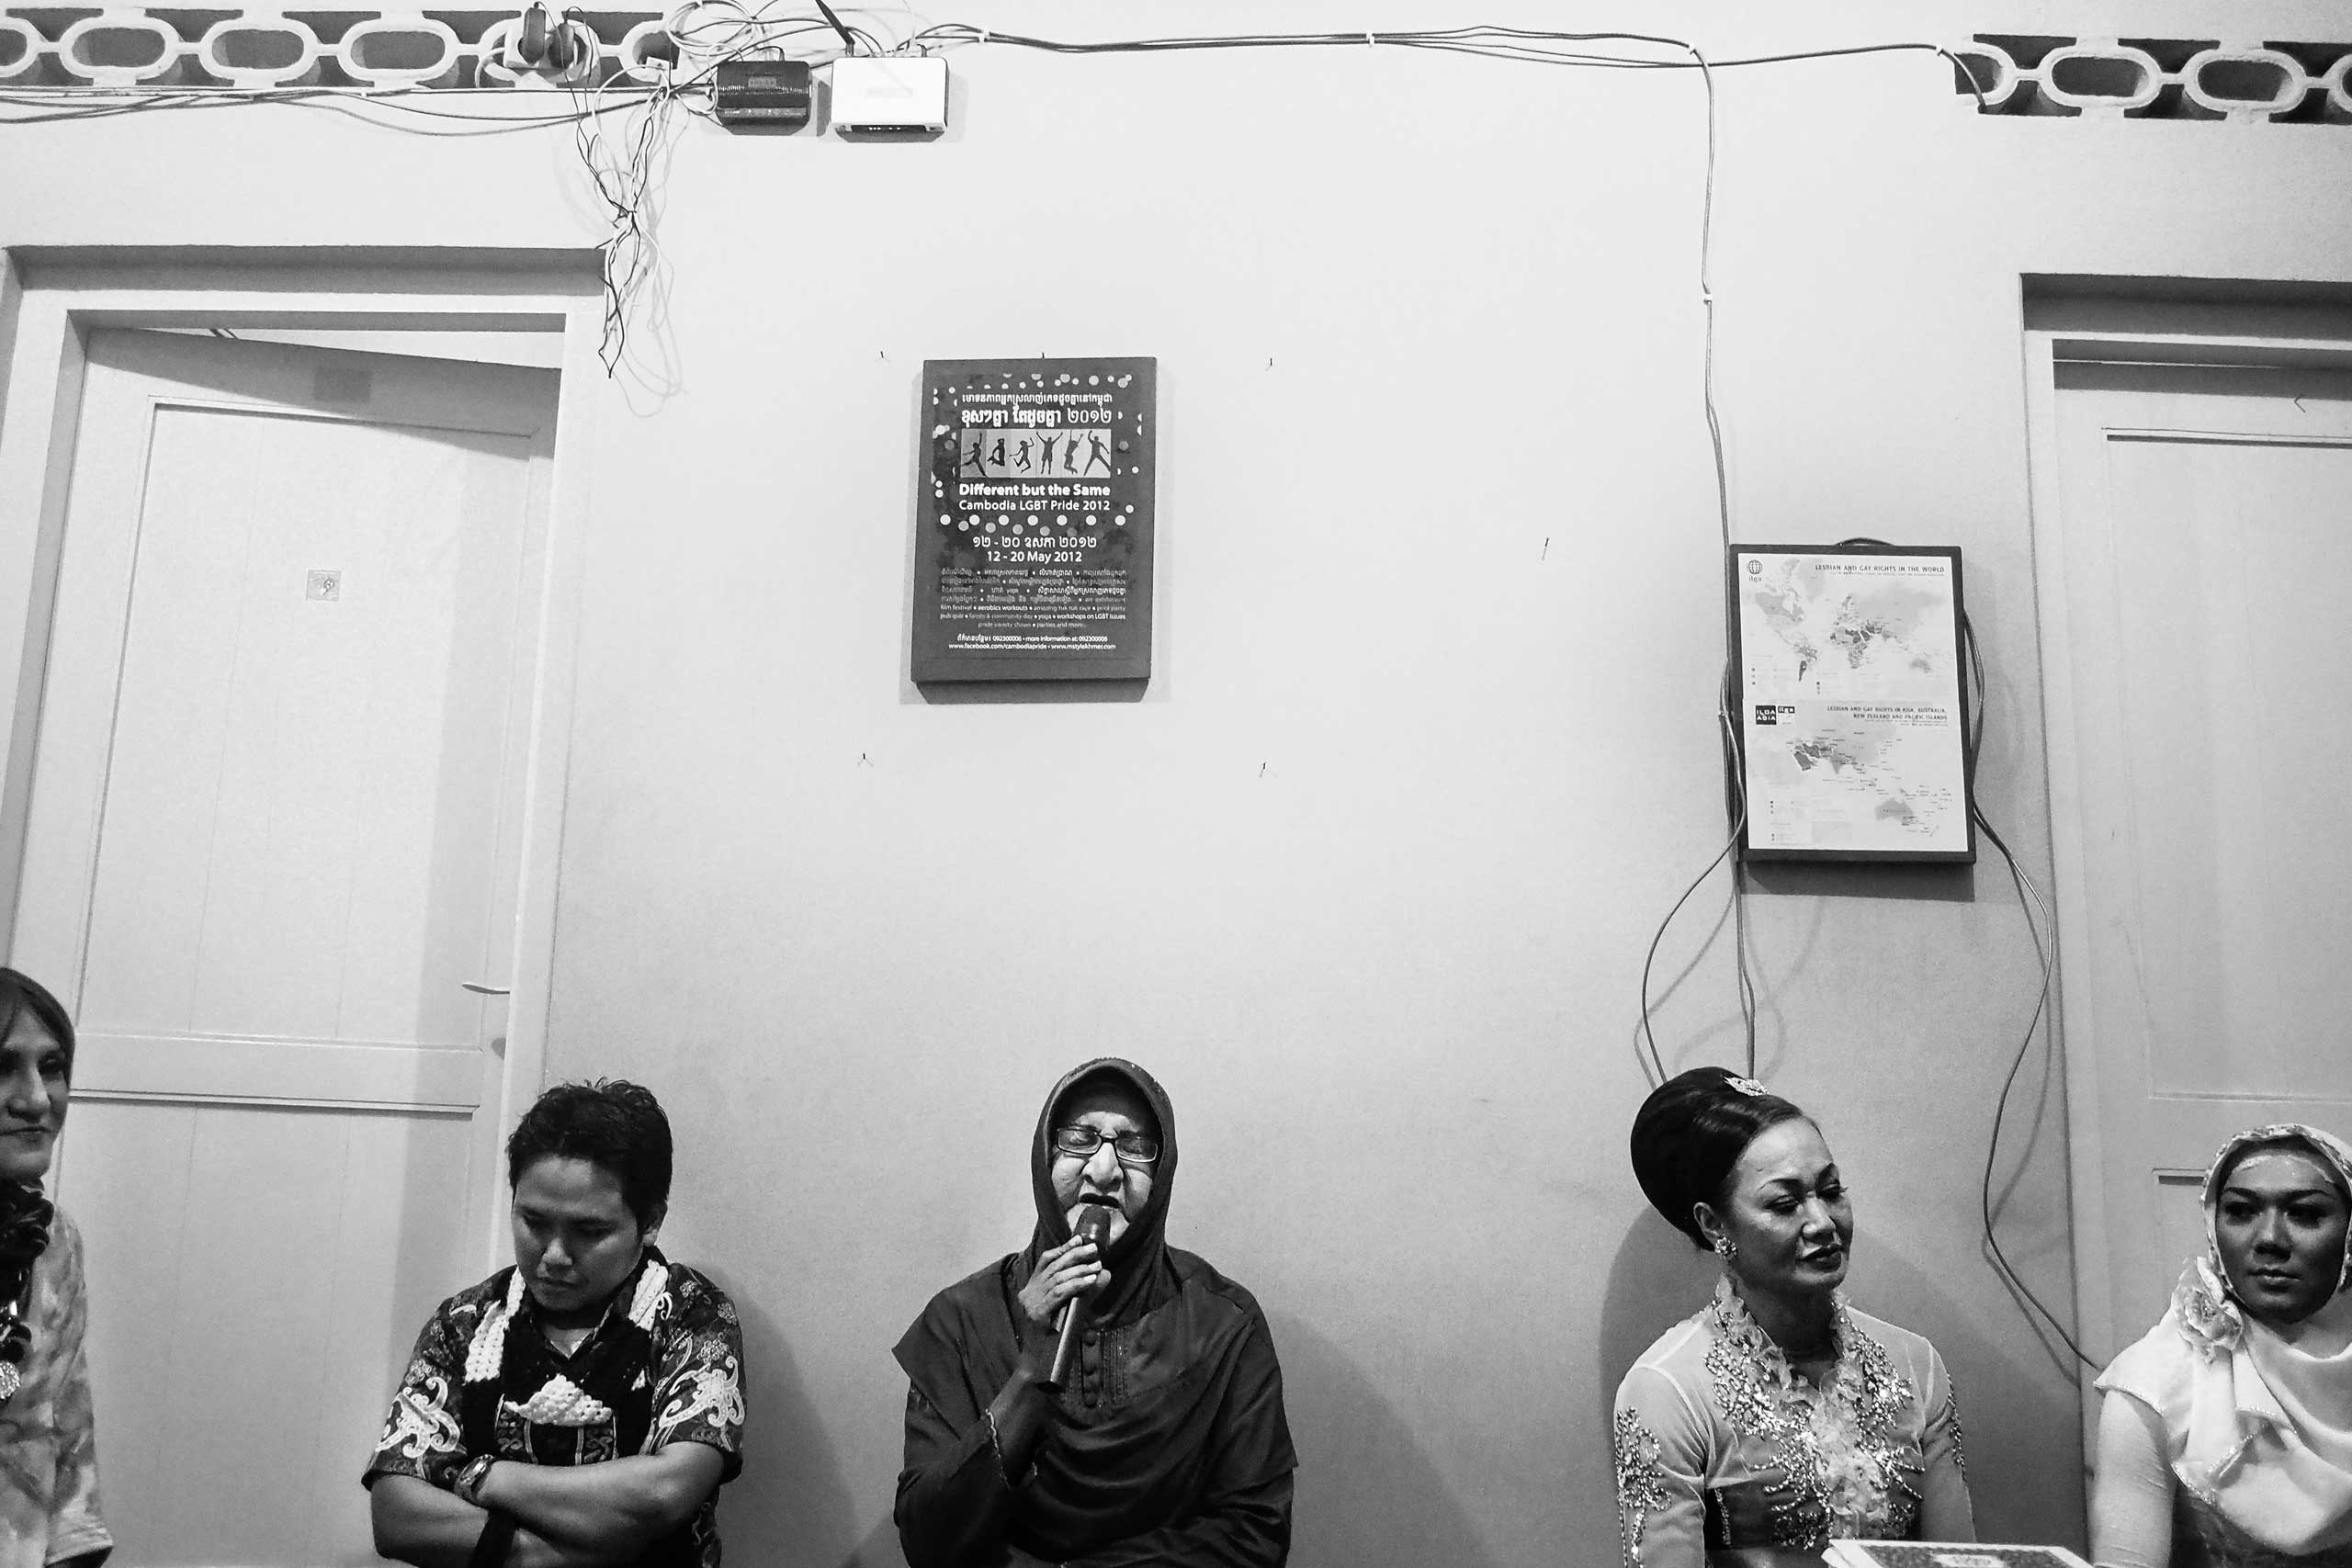 Shinta Ratri talks about sexuality and religion during a local annual meeting of LGBT and waria community in Yogyakarta.